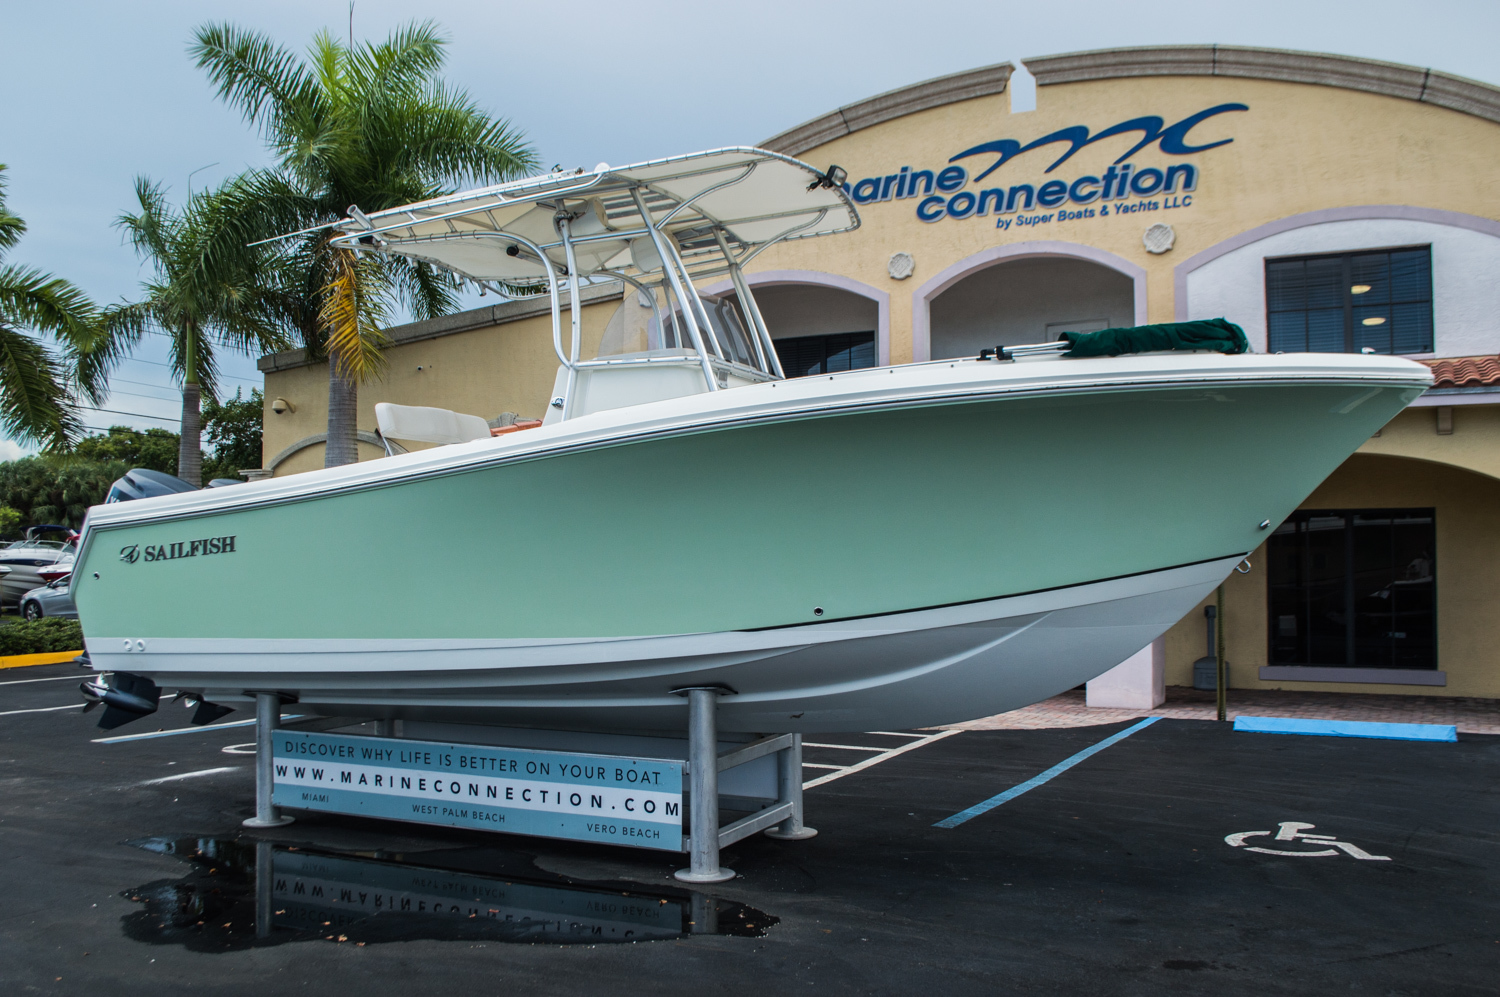 Thumbnail 1 for Used 2006 Sailfish 2360 CC Center Console boat for sale in West Palm Beach, FL